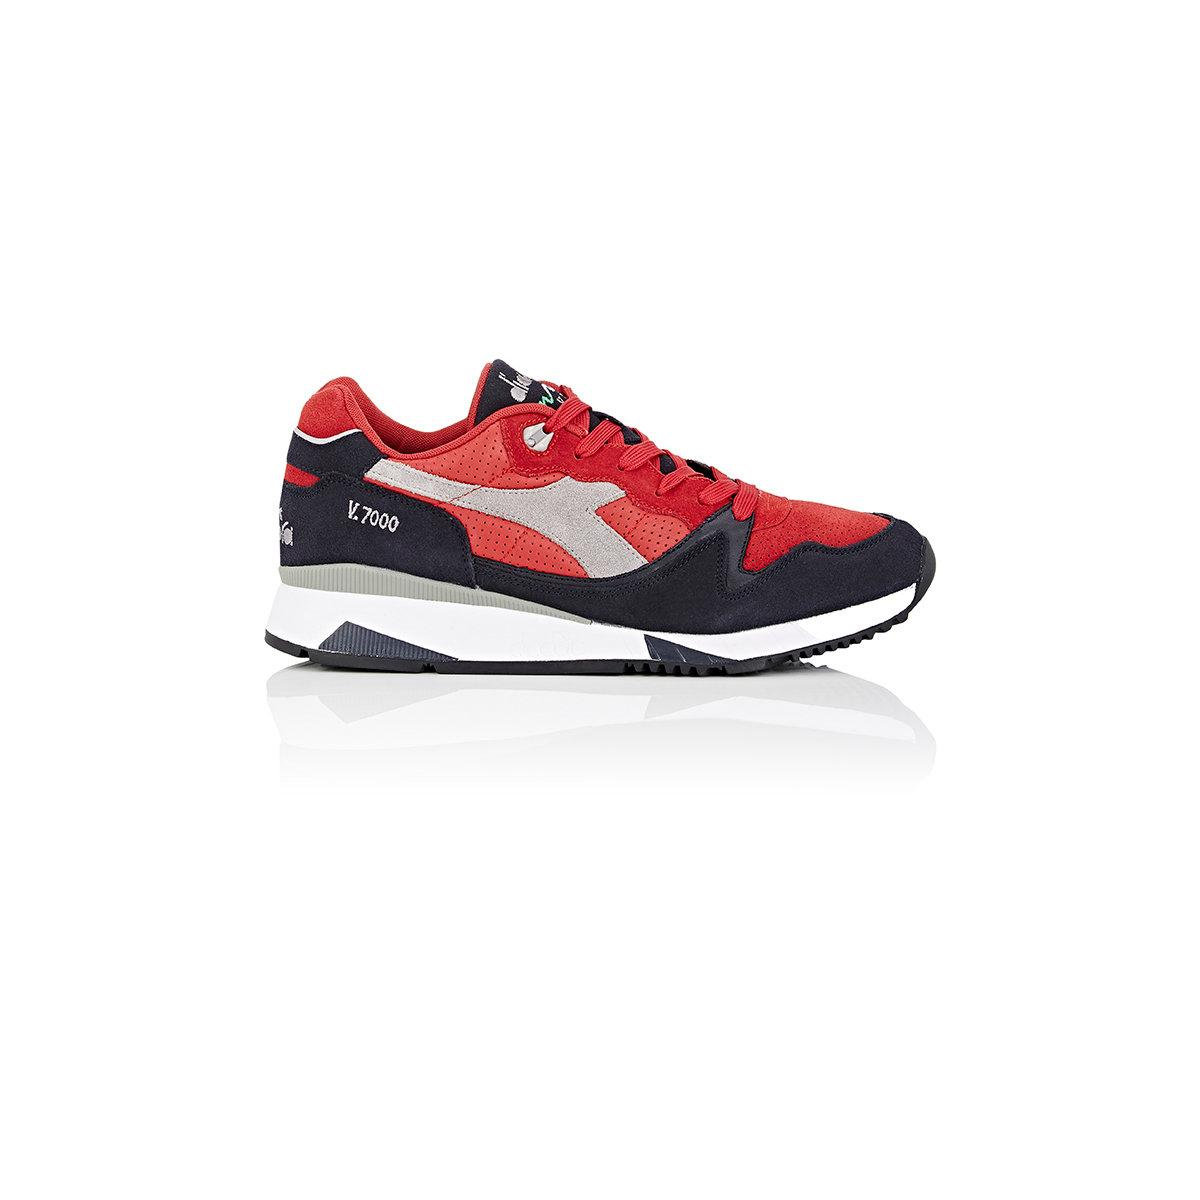 Diadora V7000 Suede & Leather Sneakers in Red